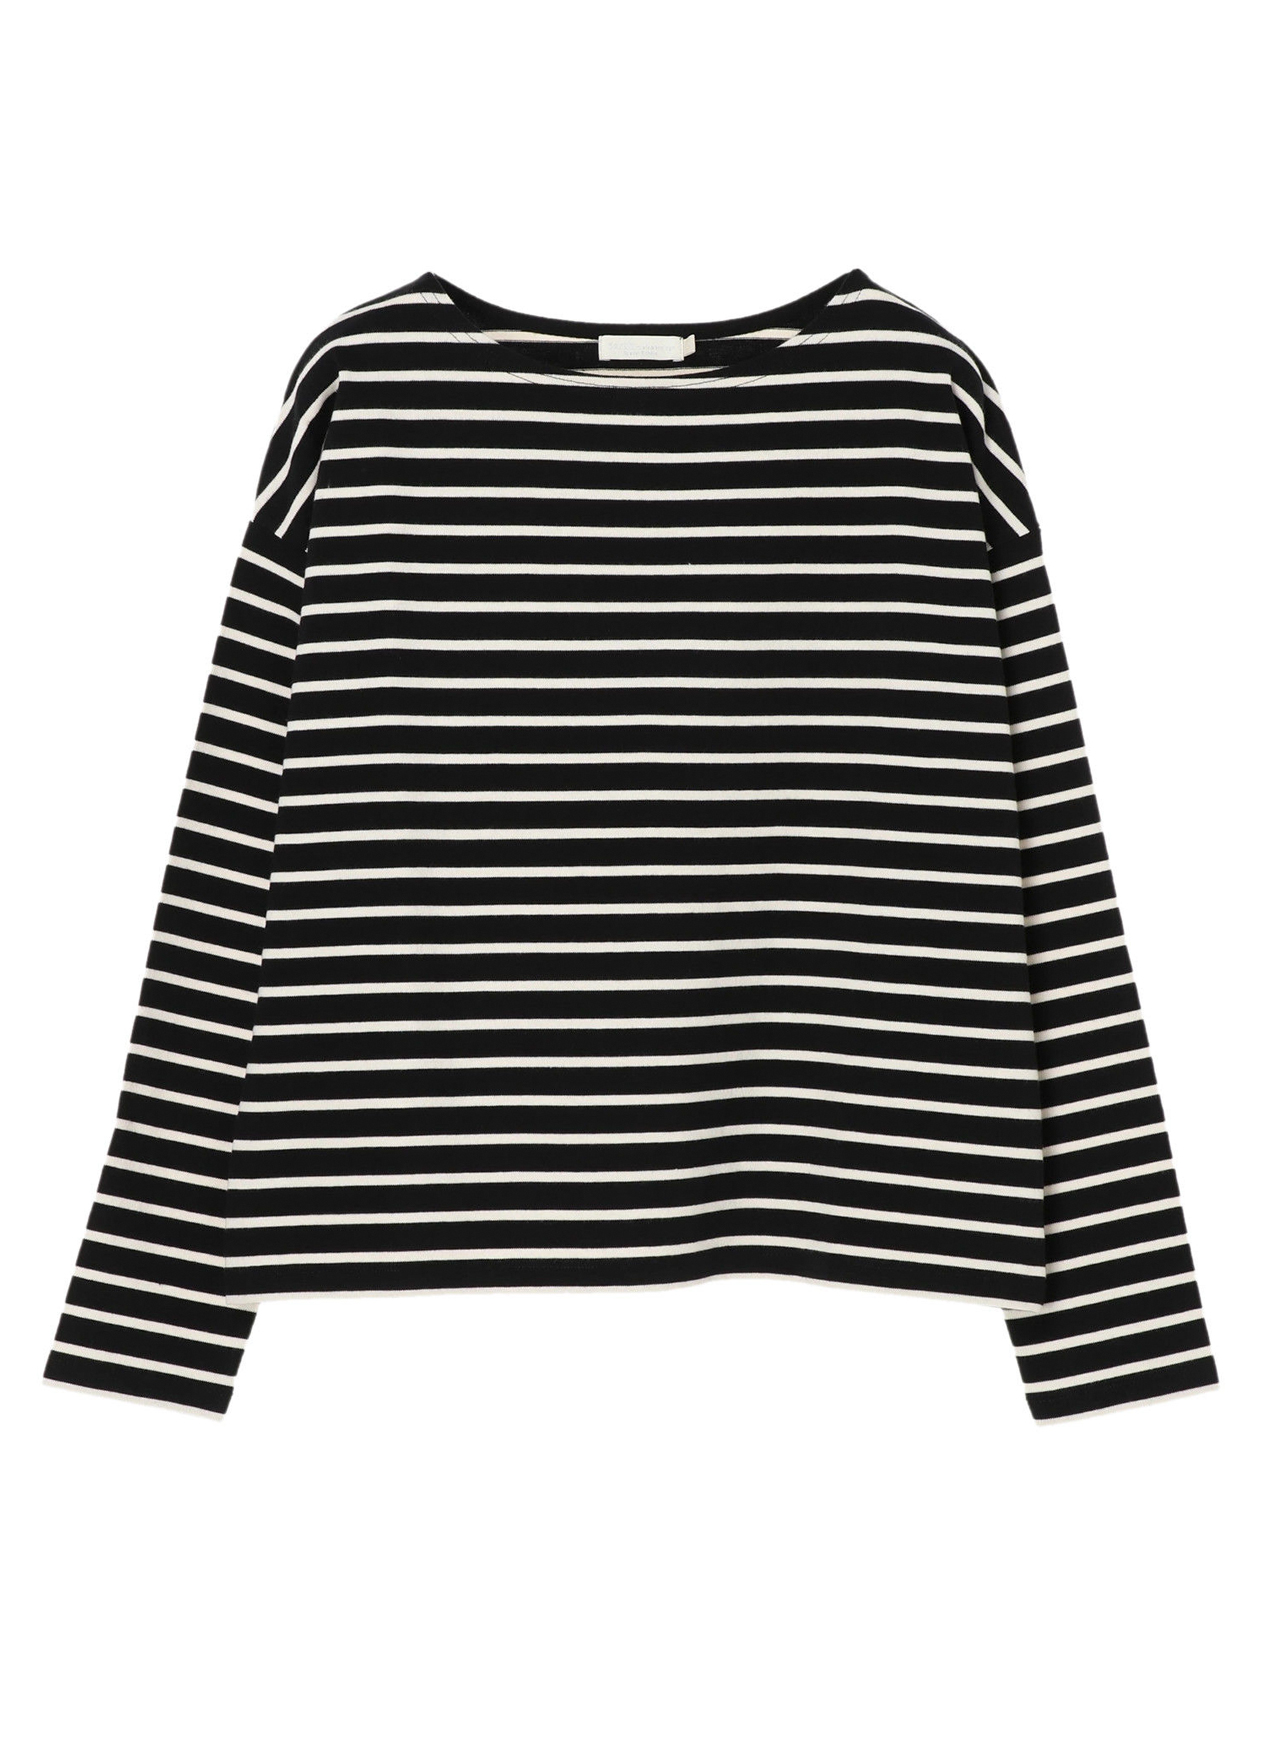 Earth, Music & Ecology Pearson Top  - Black